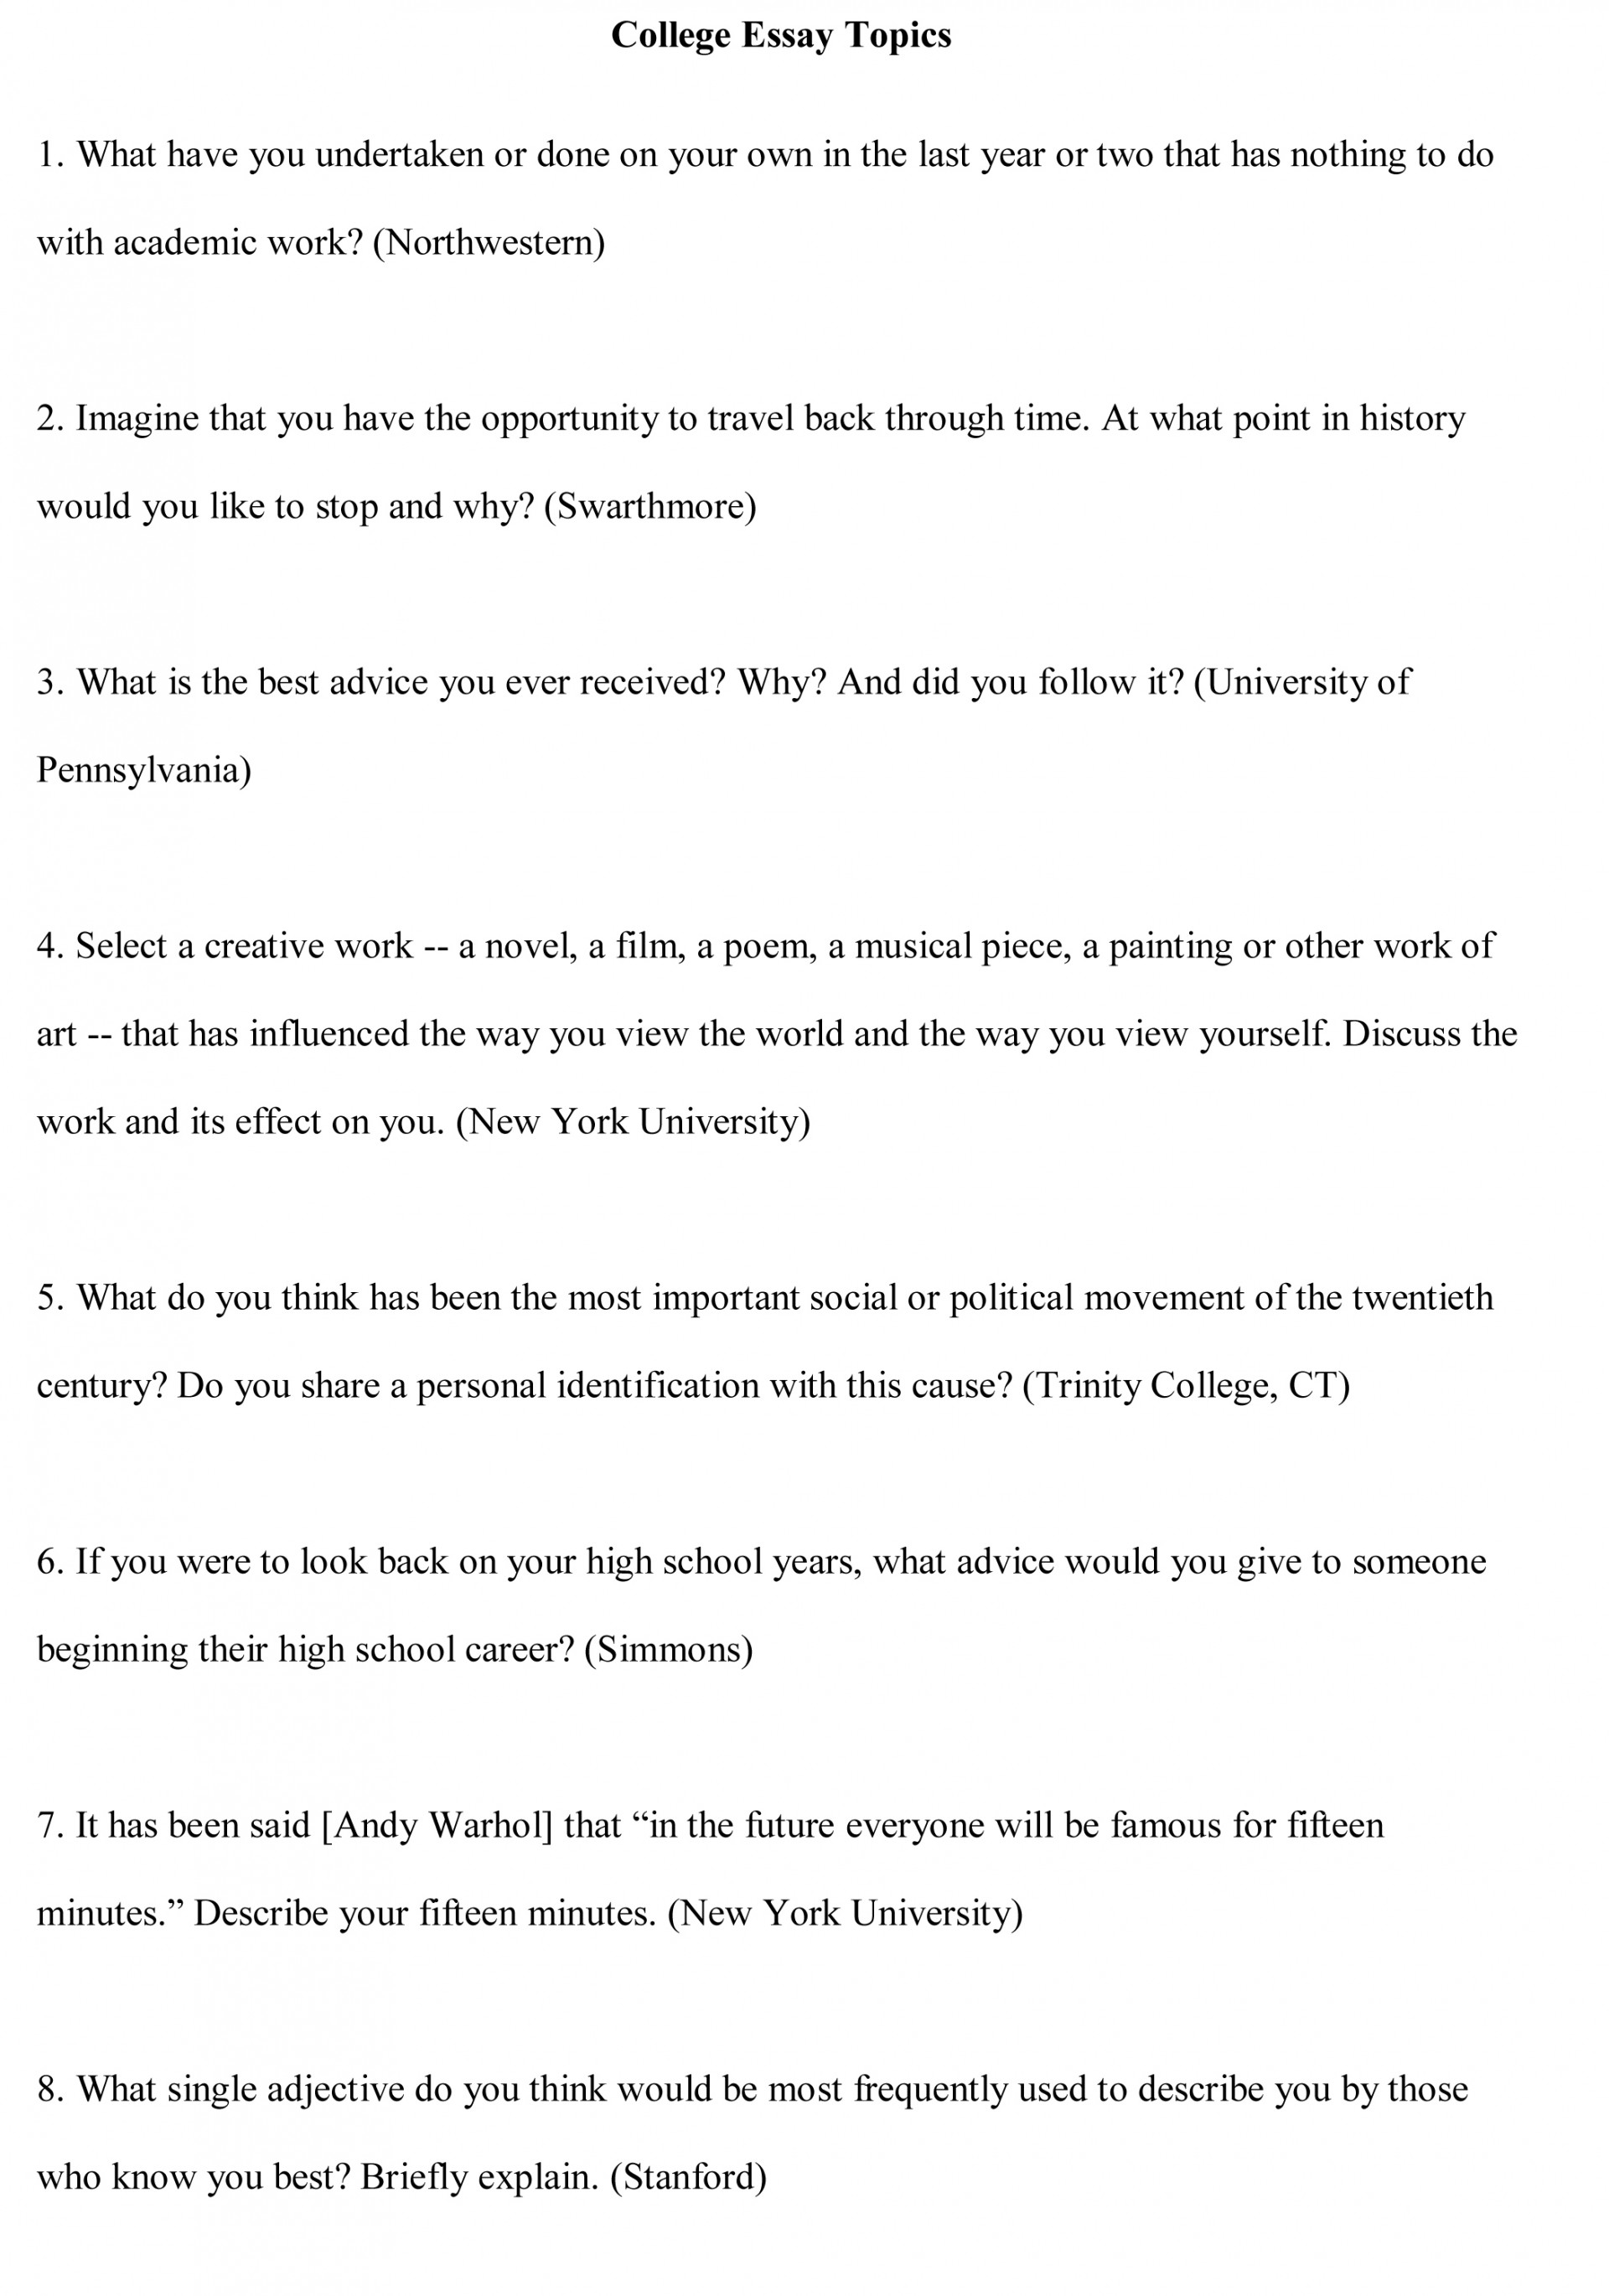 018 College Essay Topics Free Sample1 Controversial Research Paper Outstanding Ideas 1920